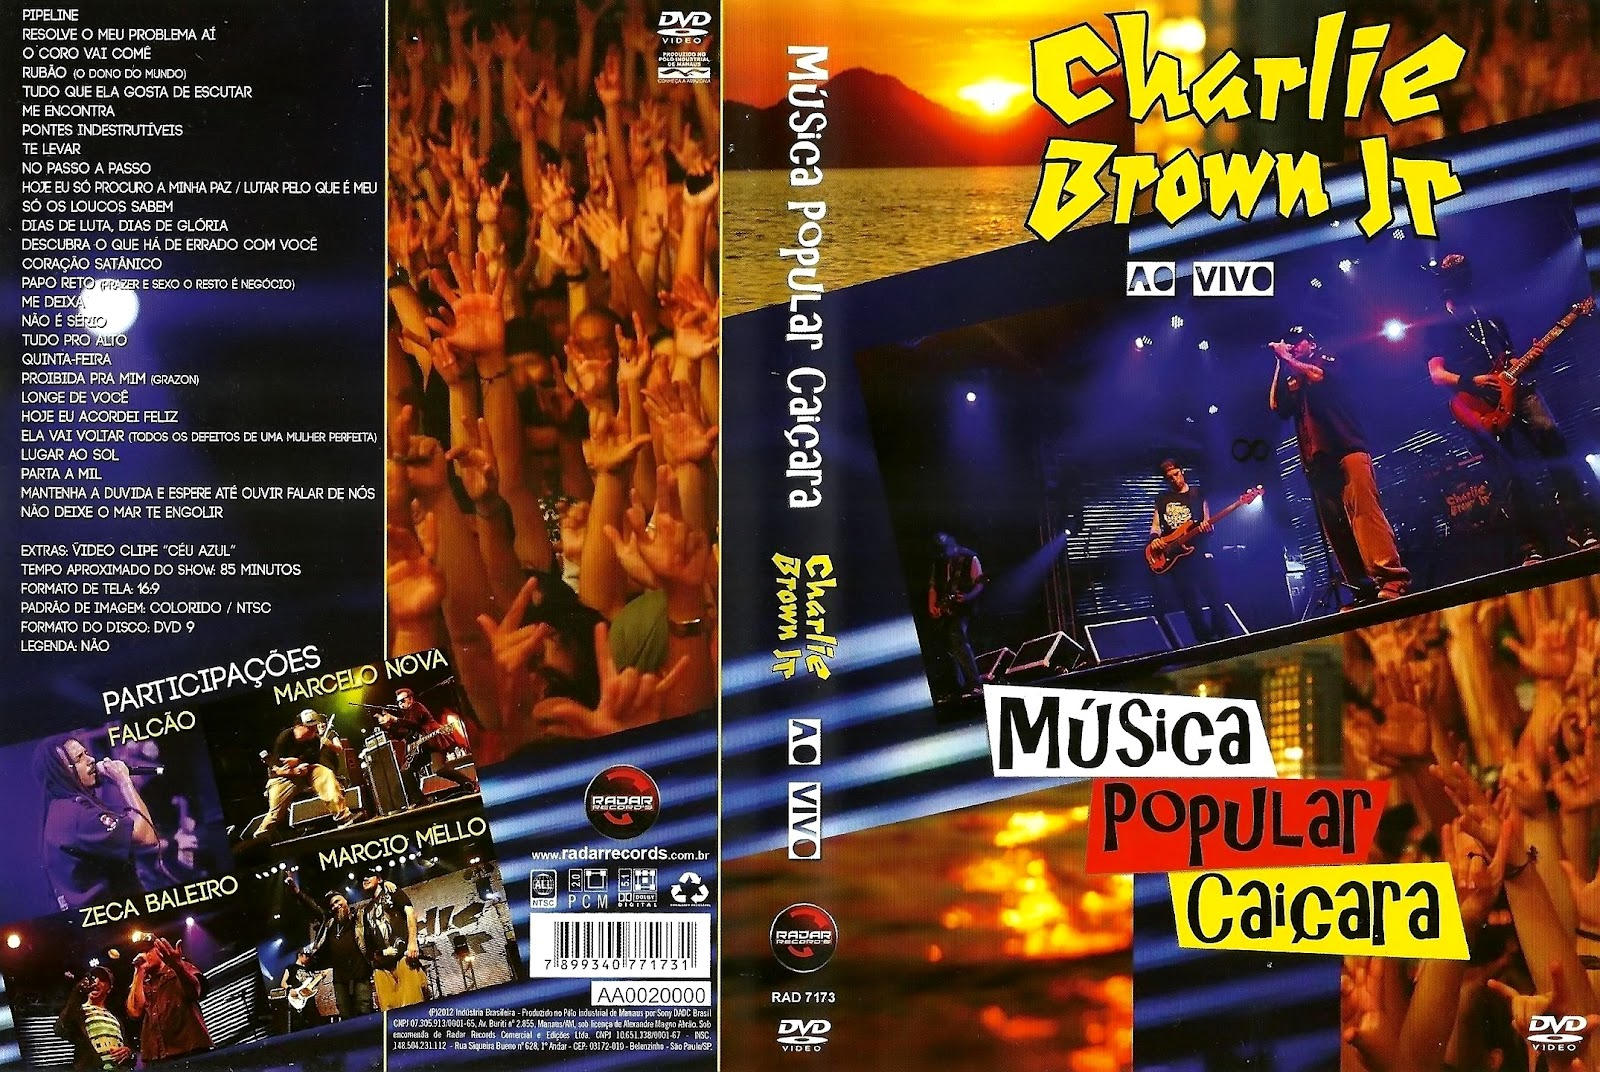 Musica Popular Caiçara Musica Popular Caiçara Charlie Brown Jr